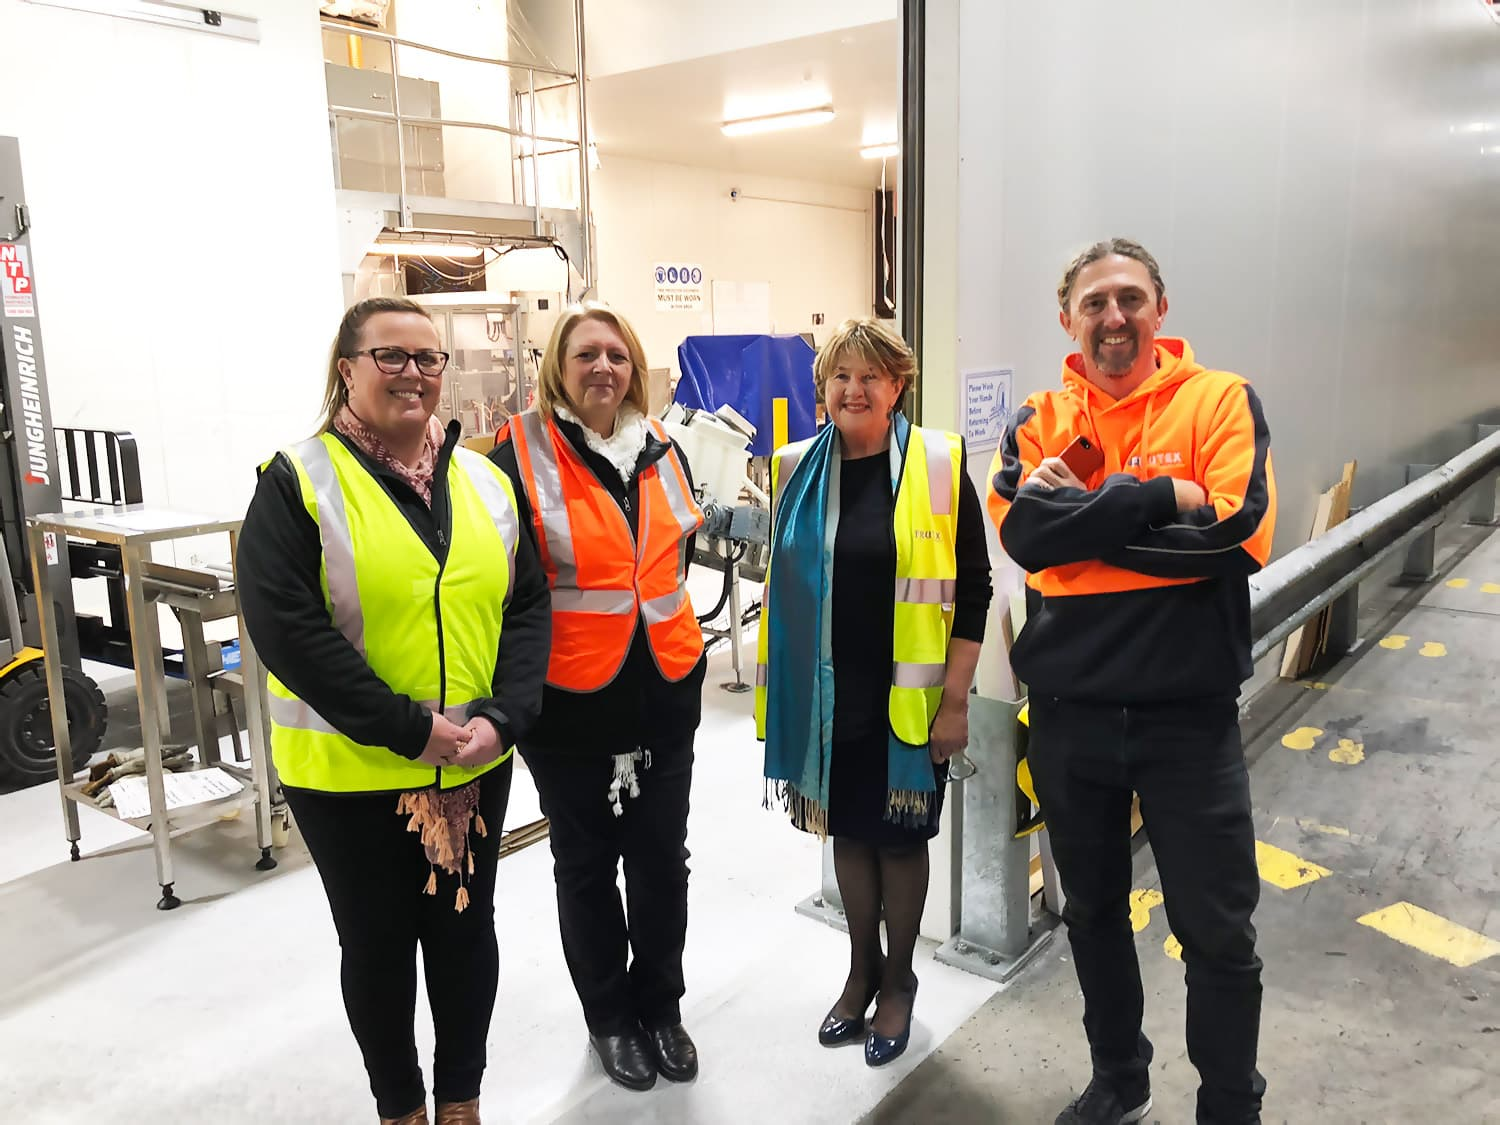 Site visit to Frutex Australia, where Single Touch Payroll has been in use since 1 July 2018